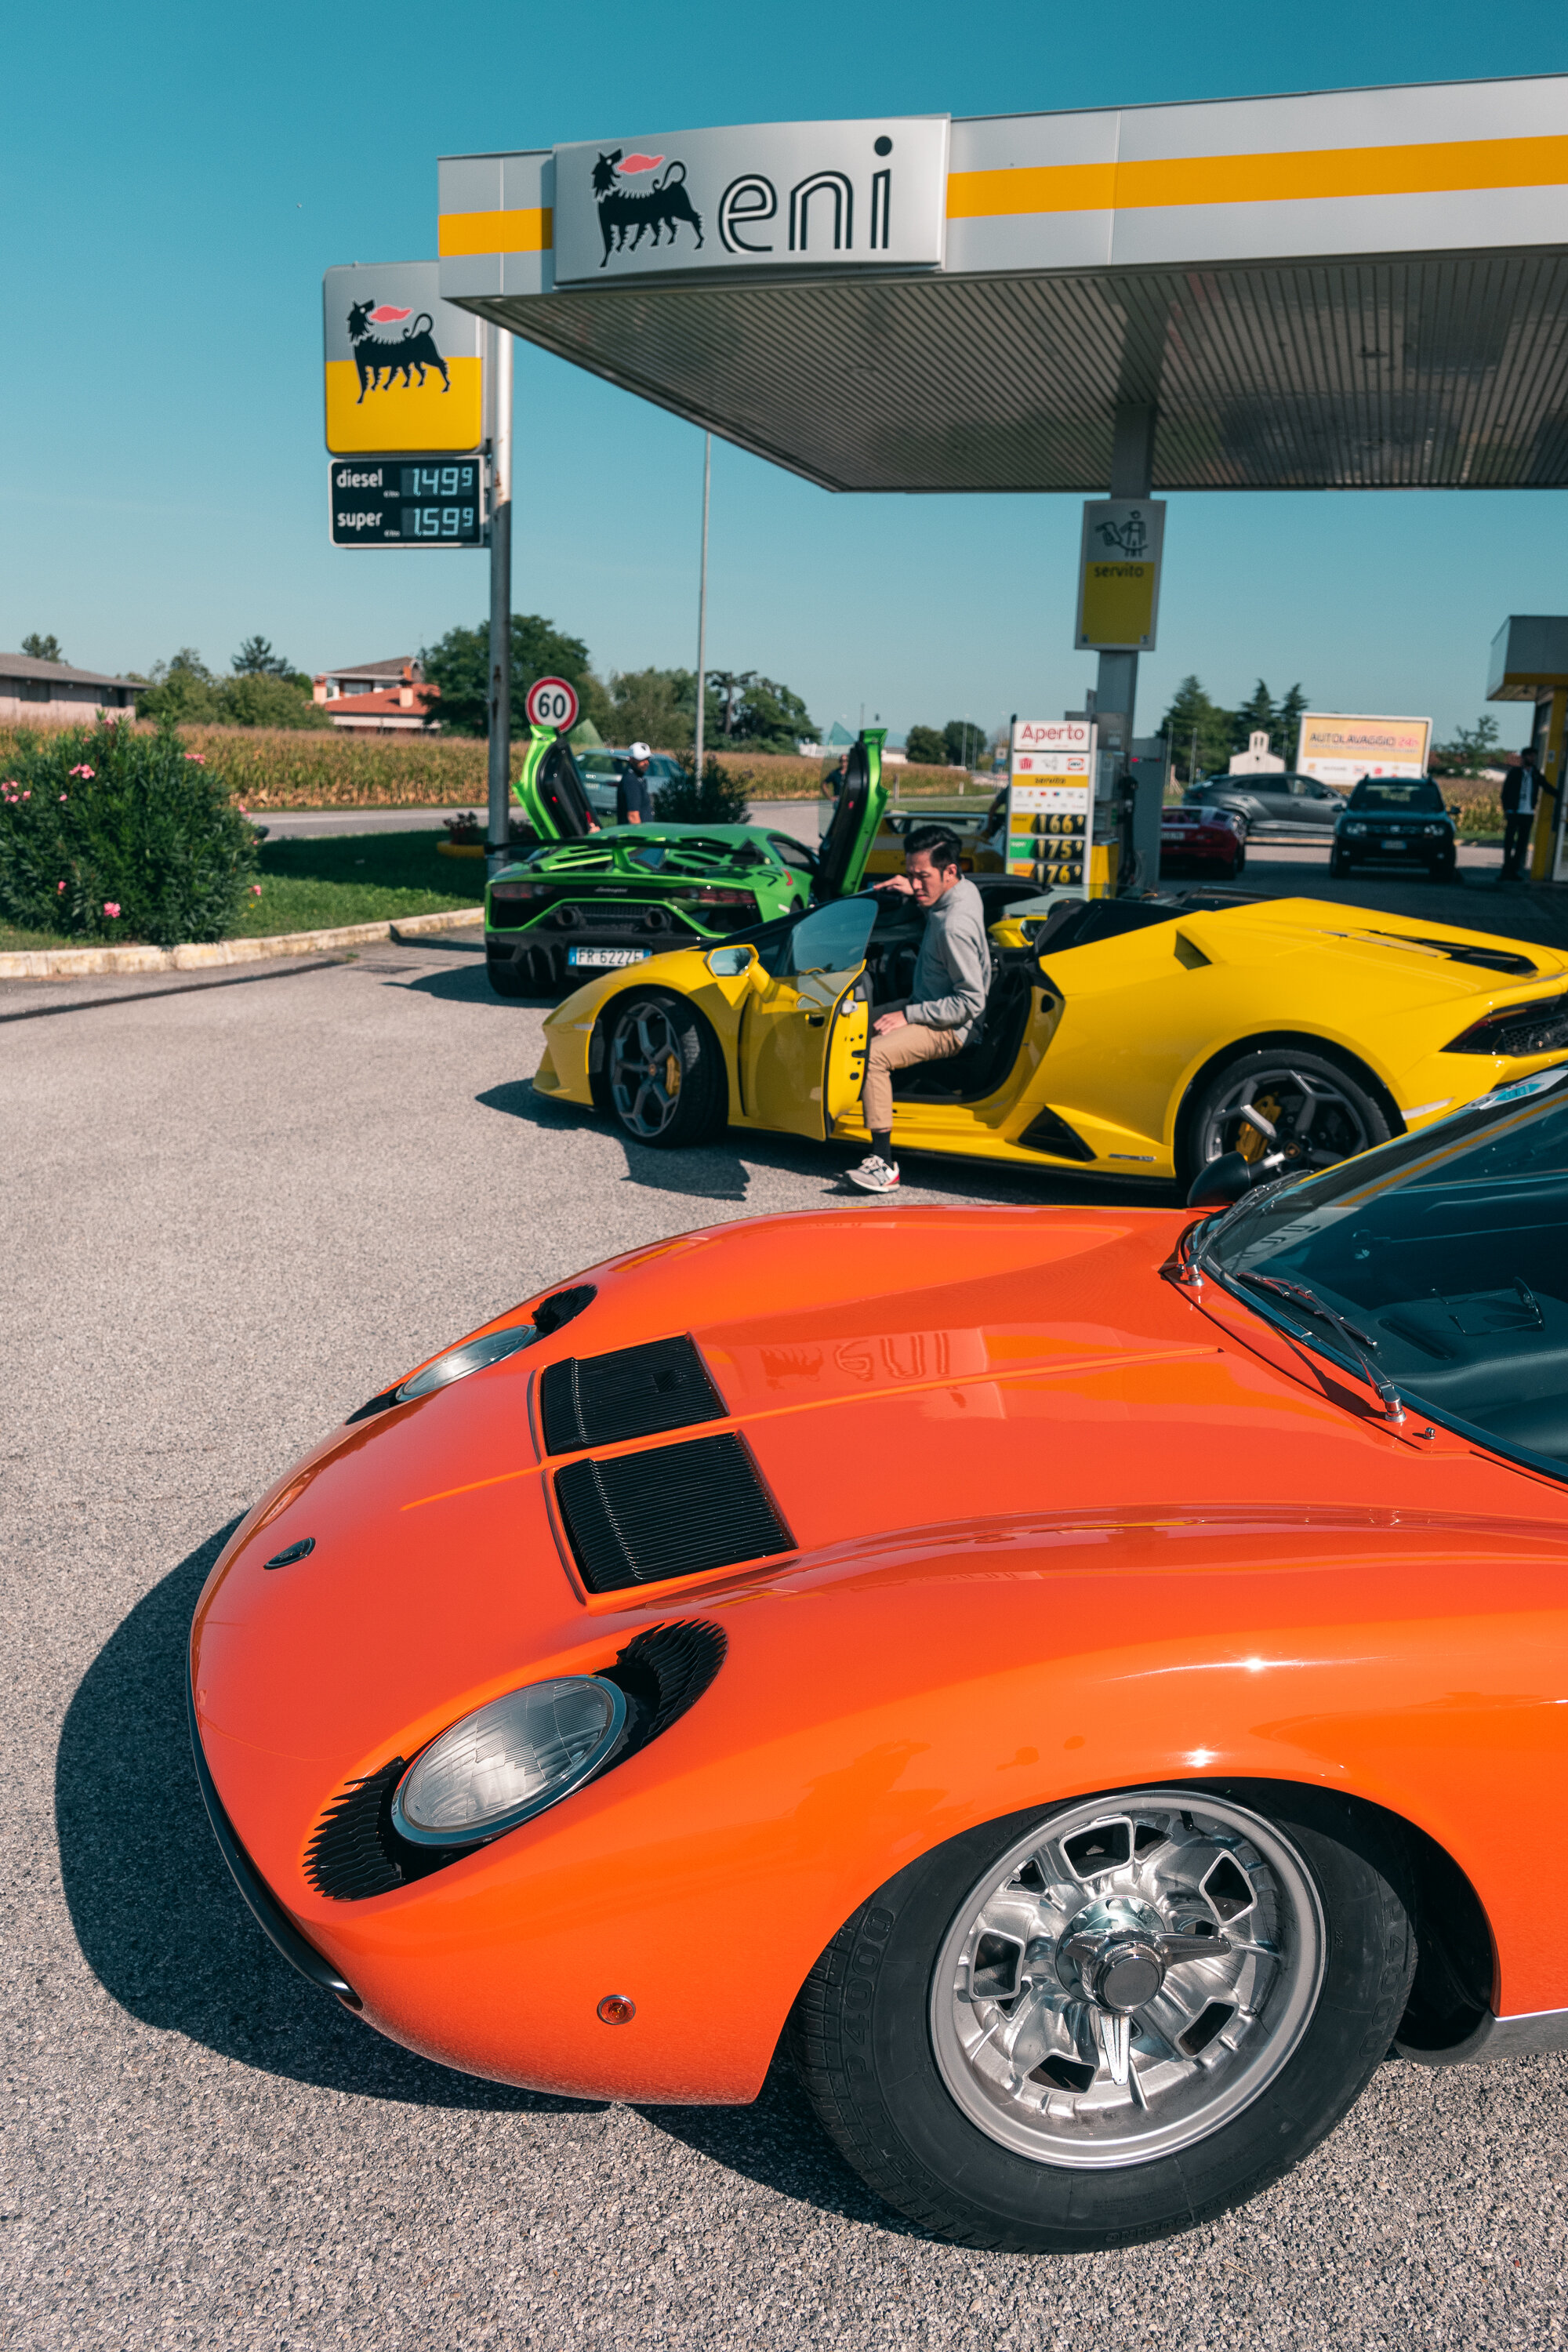 Gas station stop.